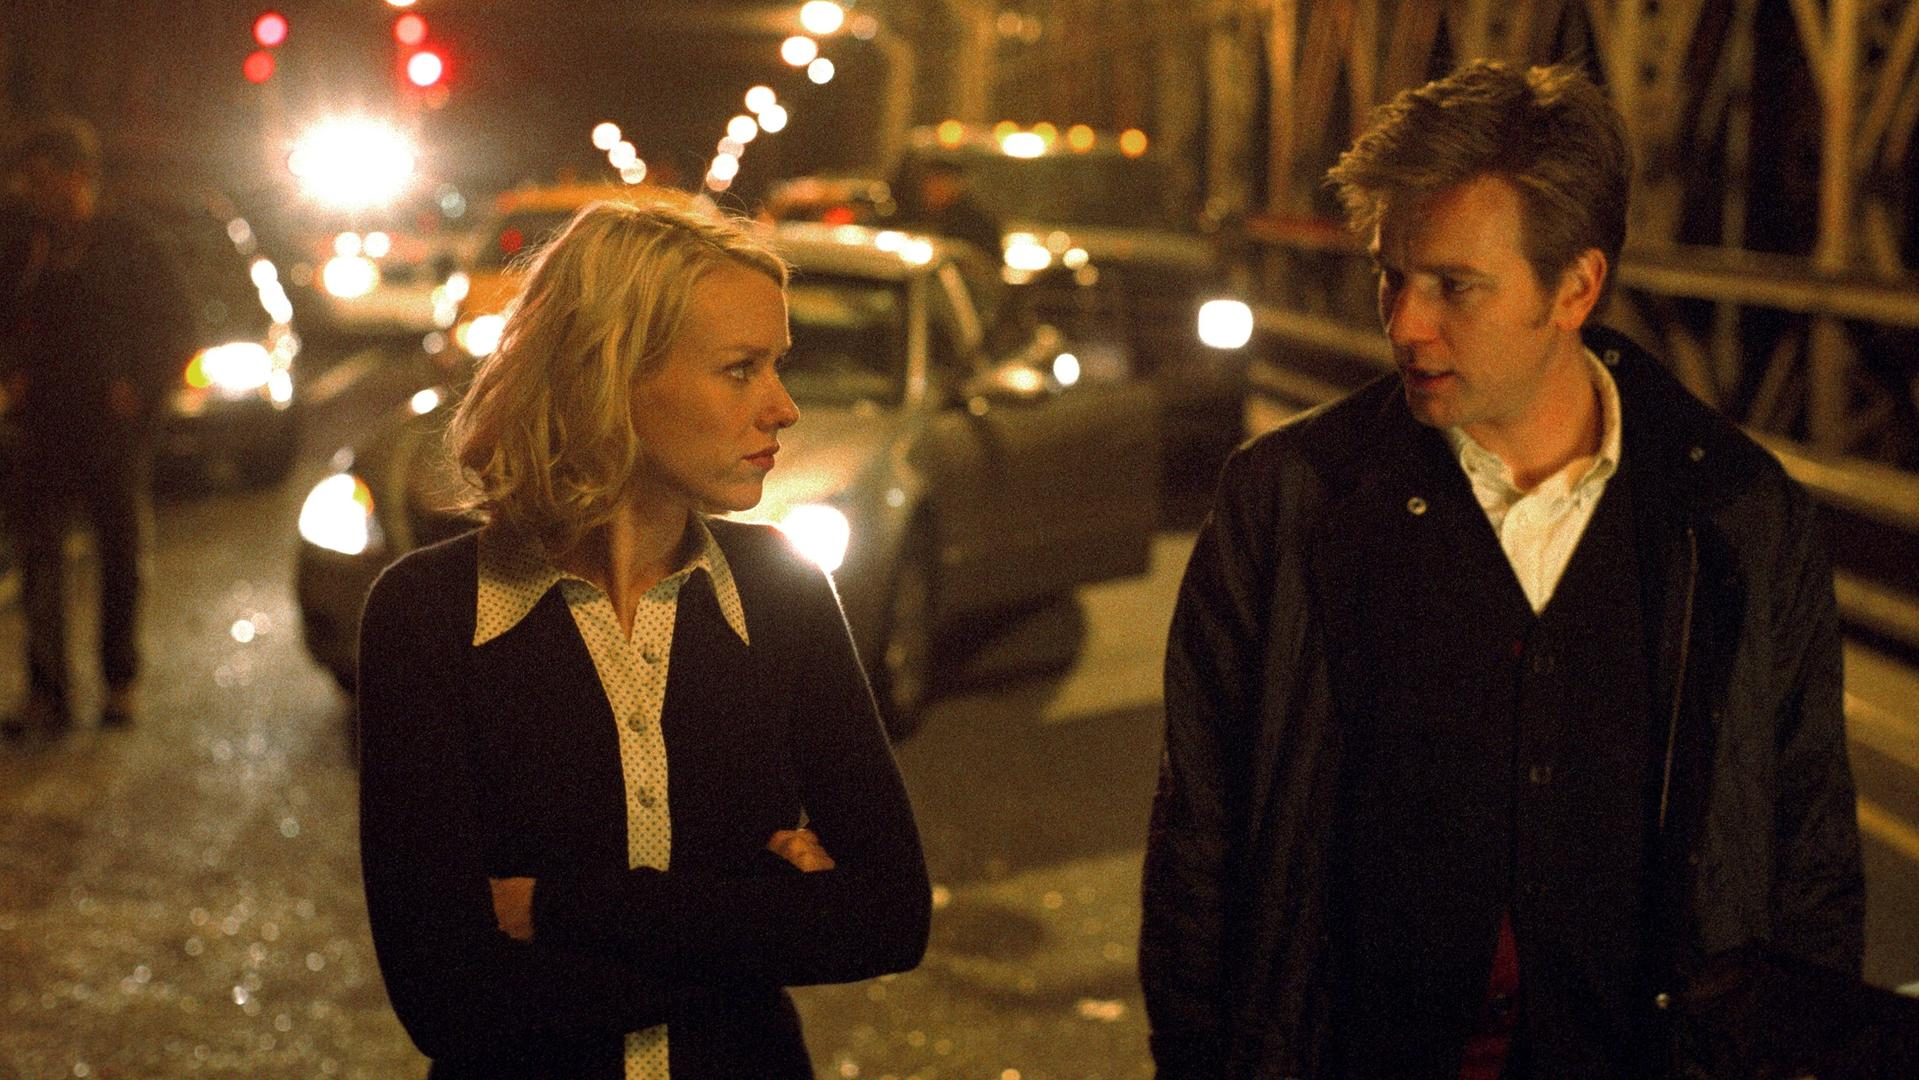 Naomi Watts and Ewan McGregor at the accident scene in Stay (2005)